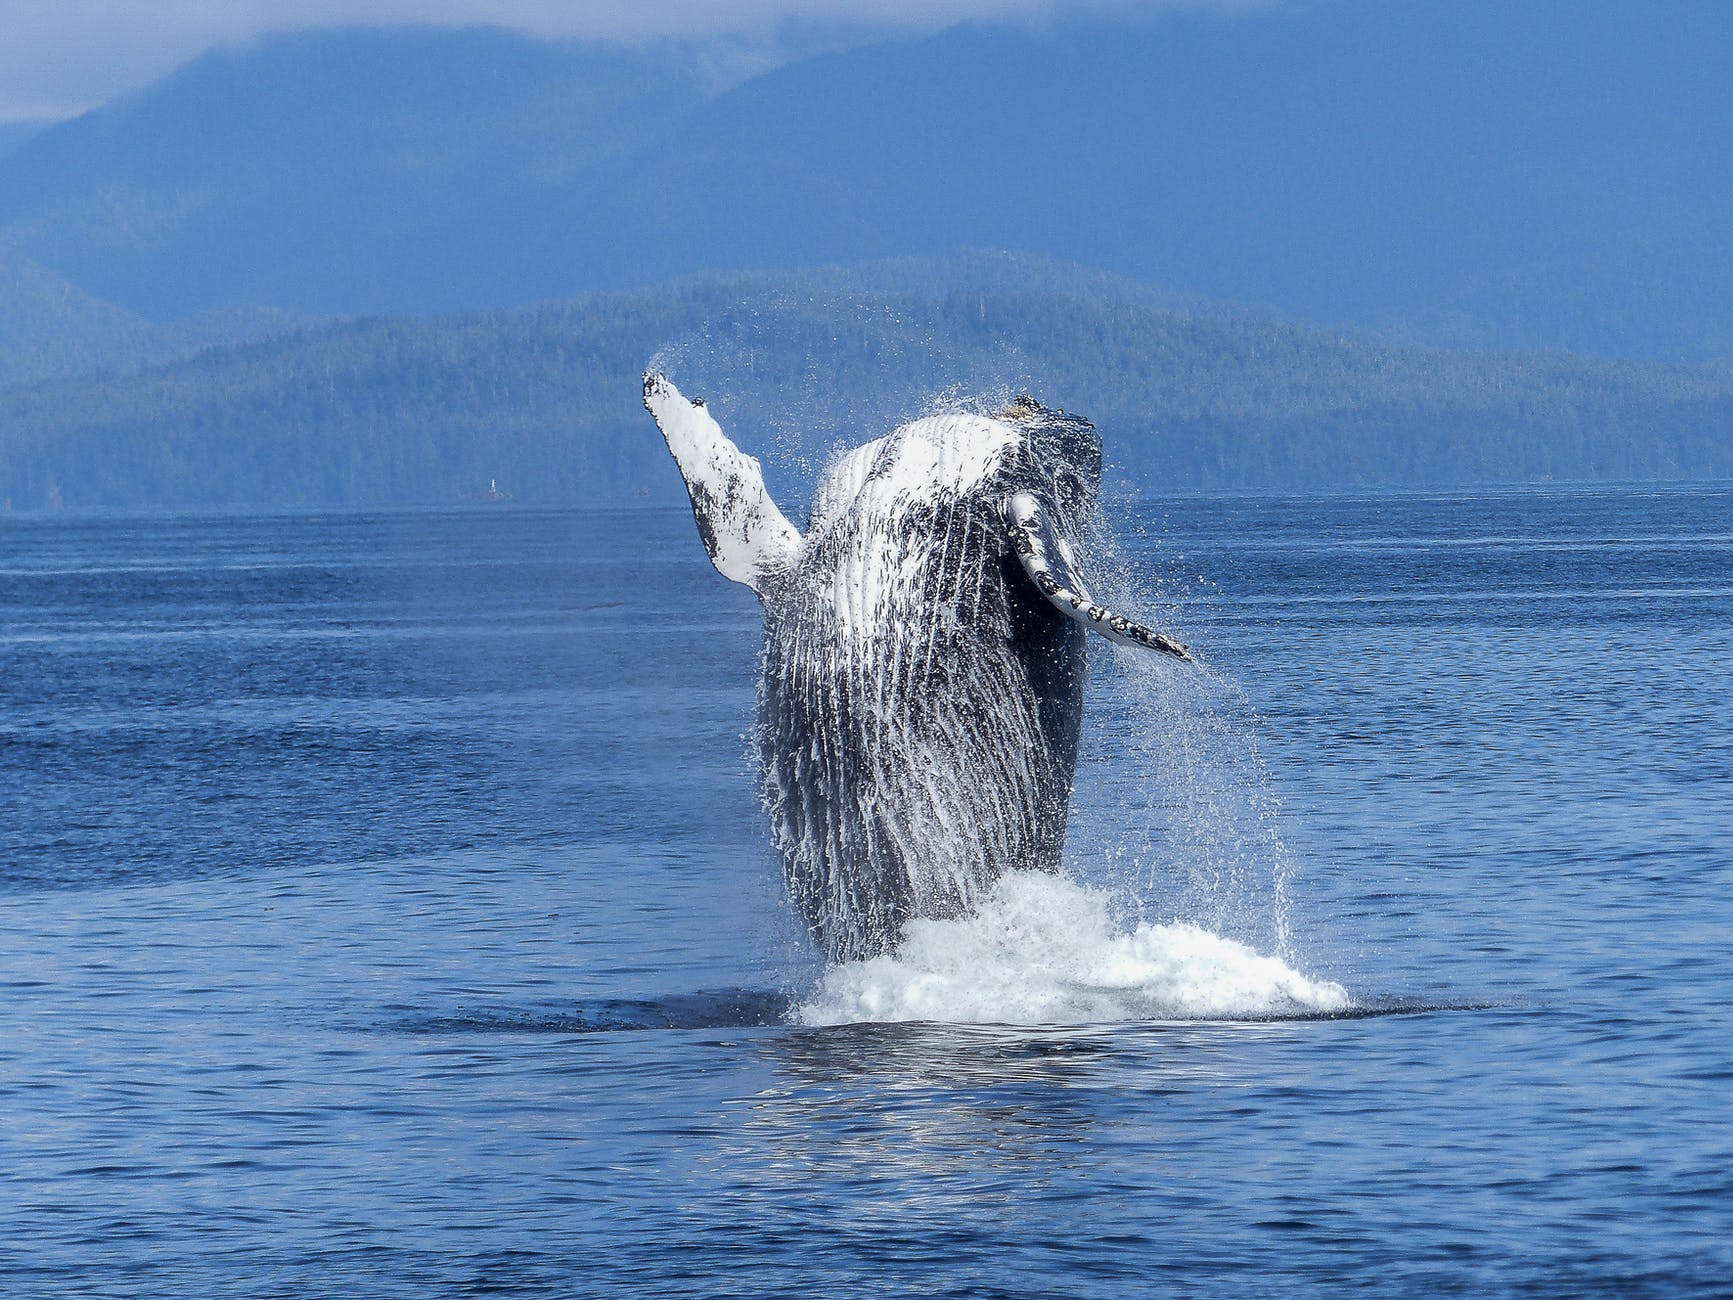 Photo of a humpback whale jumping from a body of water